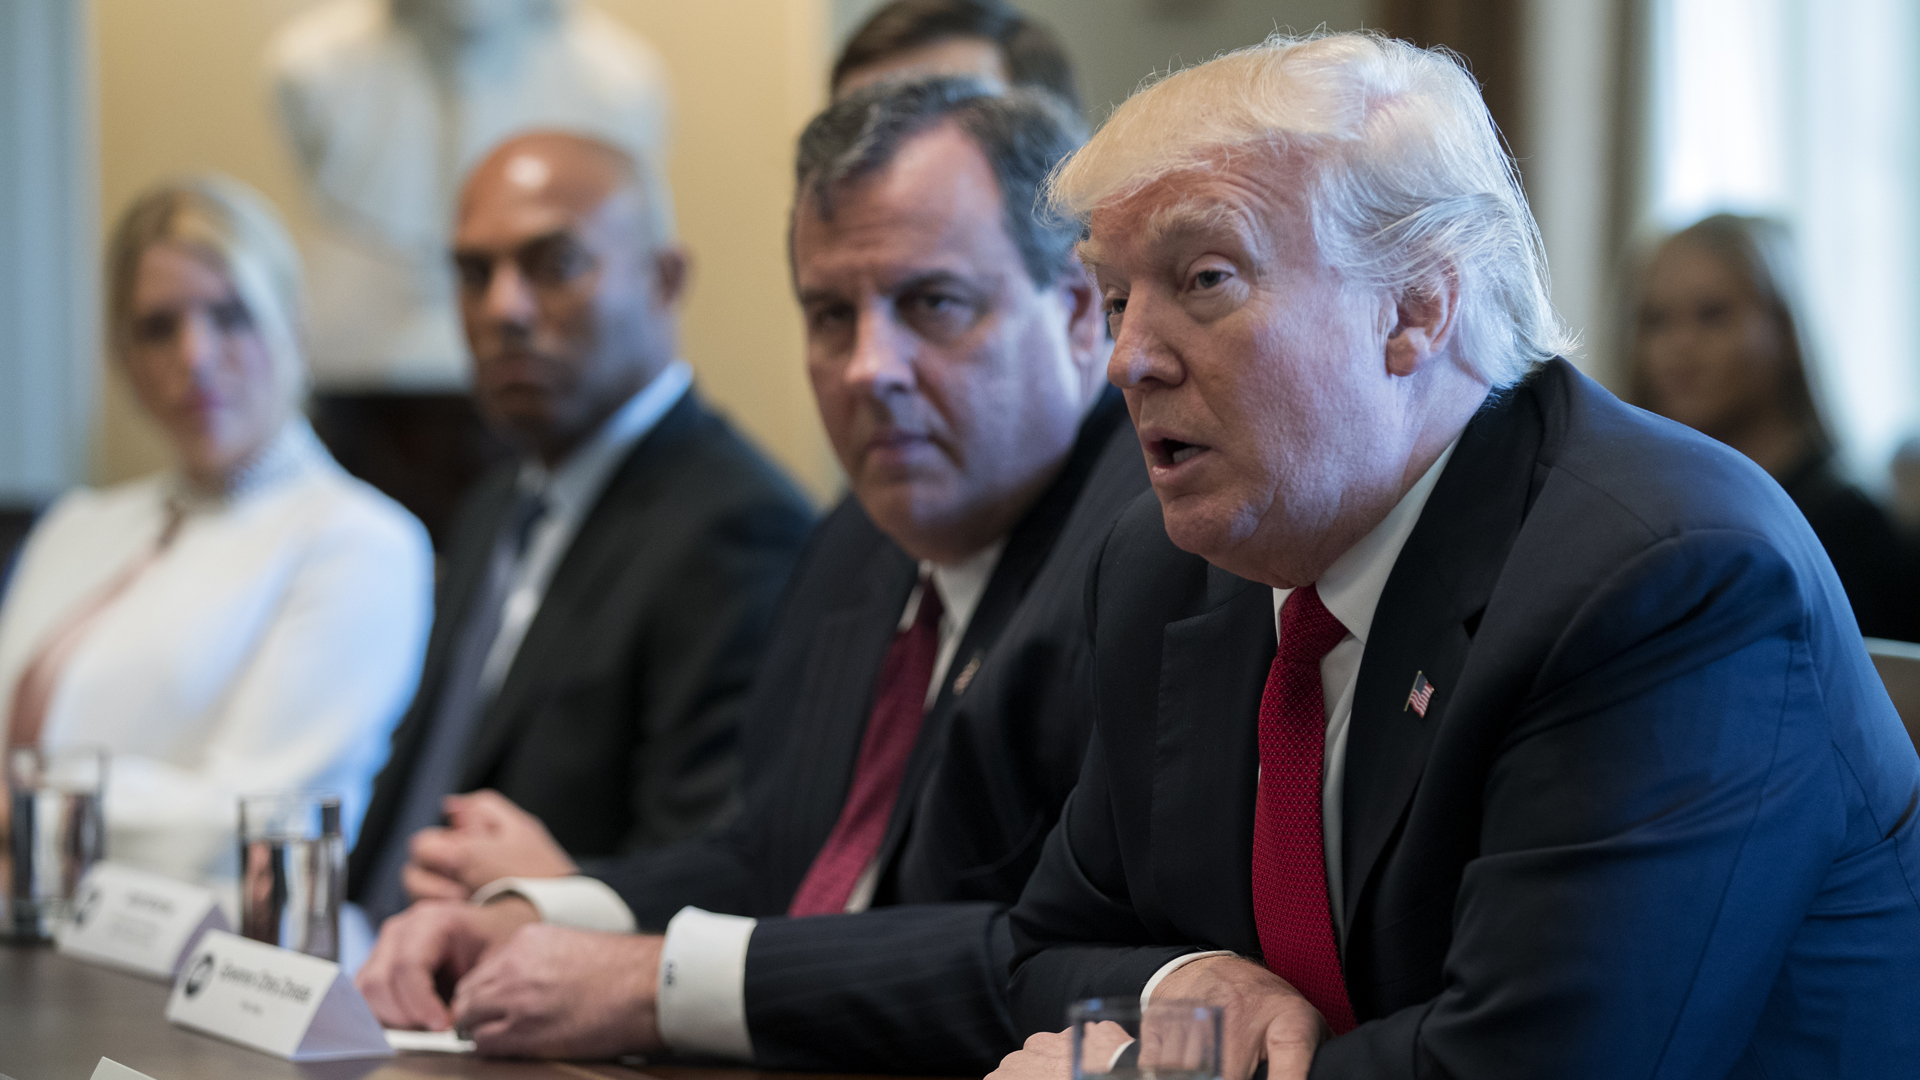 President Donald Trump speaks at a panel on opioid and drug abuse on March 29 in Washington D.C. alongside New Jersey Gov. Chris Christie, who Trump named chair of the the Commission on Combatting Drug Addiction and the Opioid Crisis. (Credit: Shawn Thew/Pool/Getty Images)